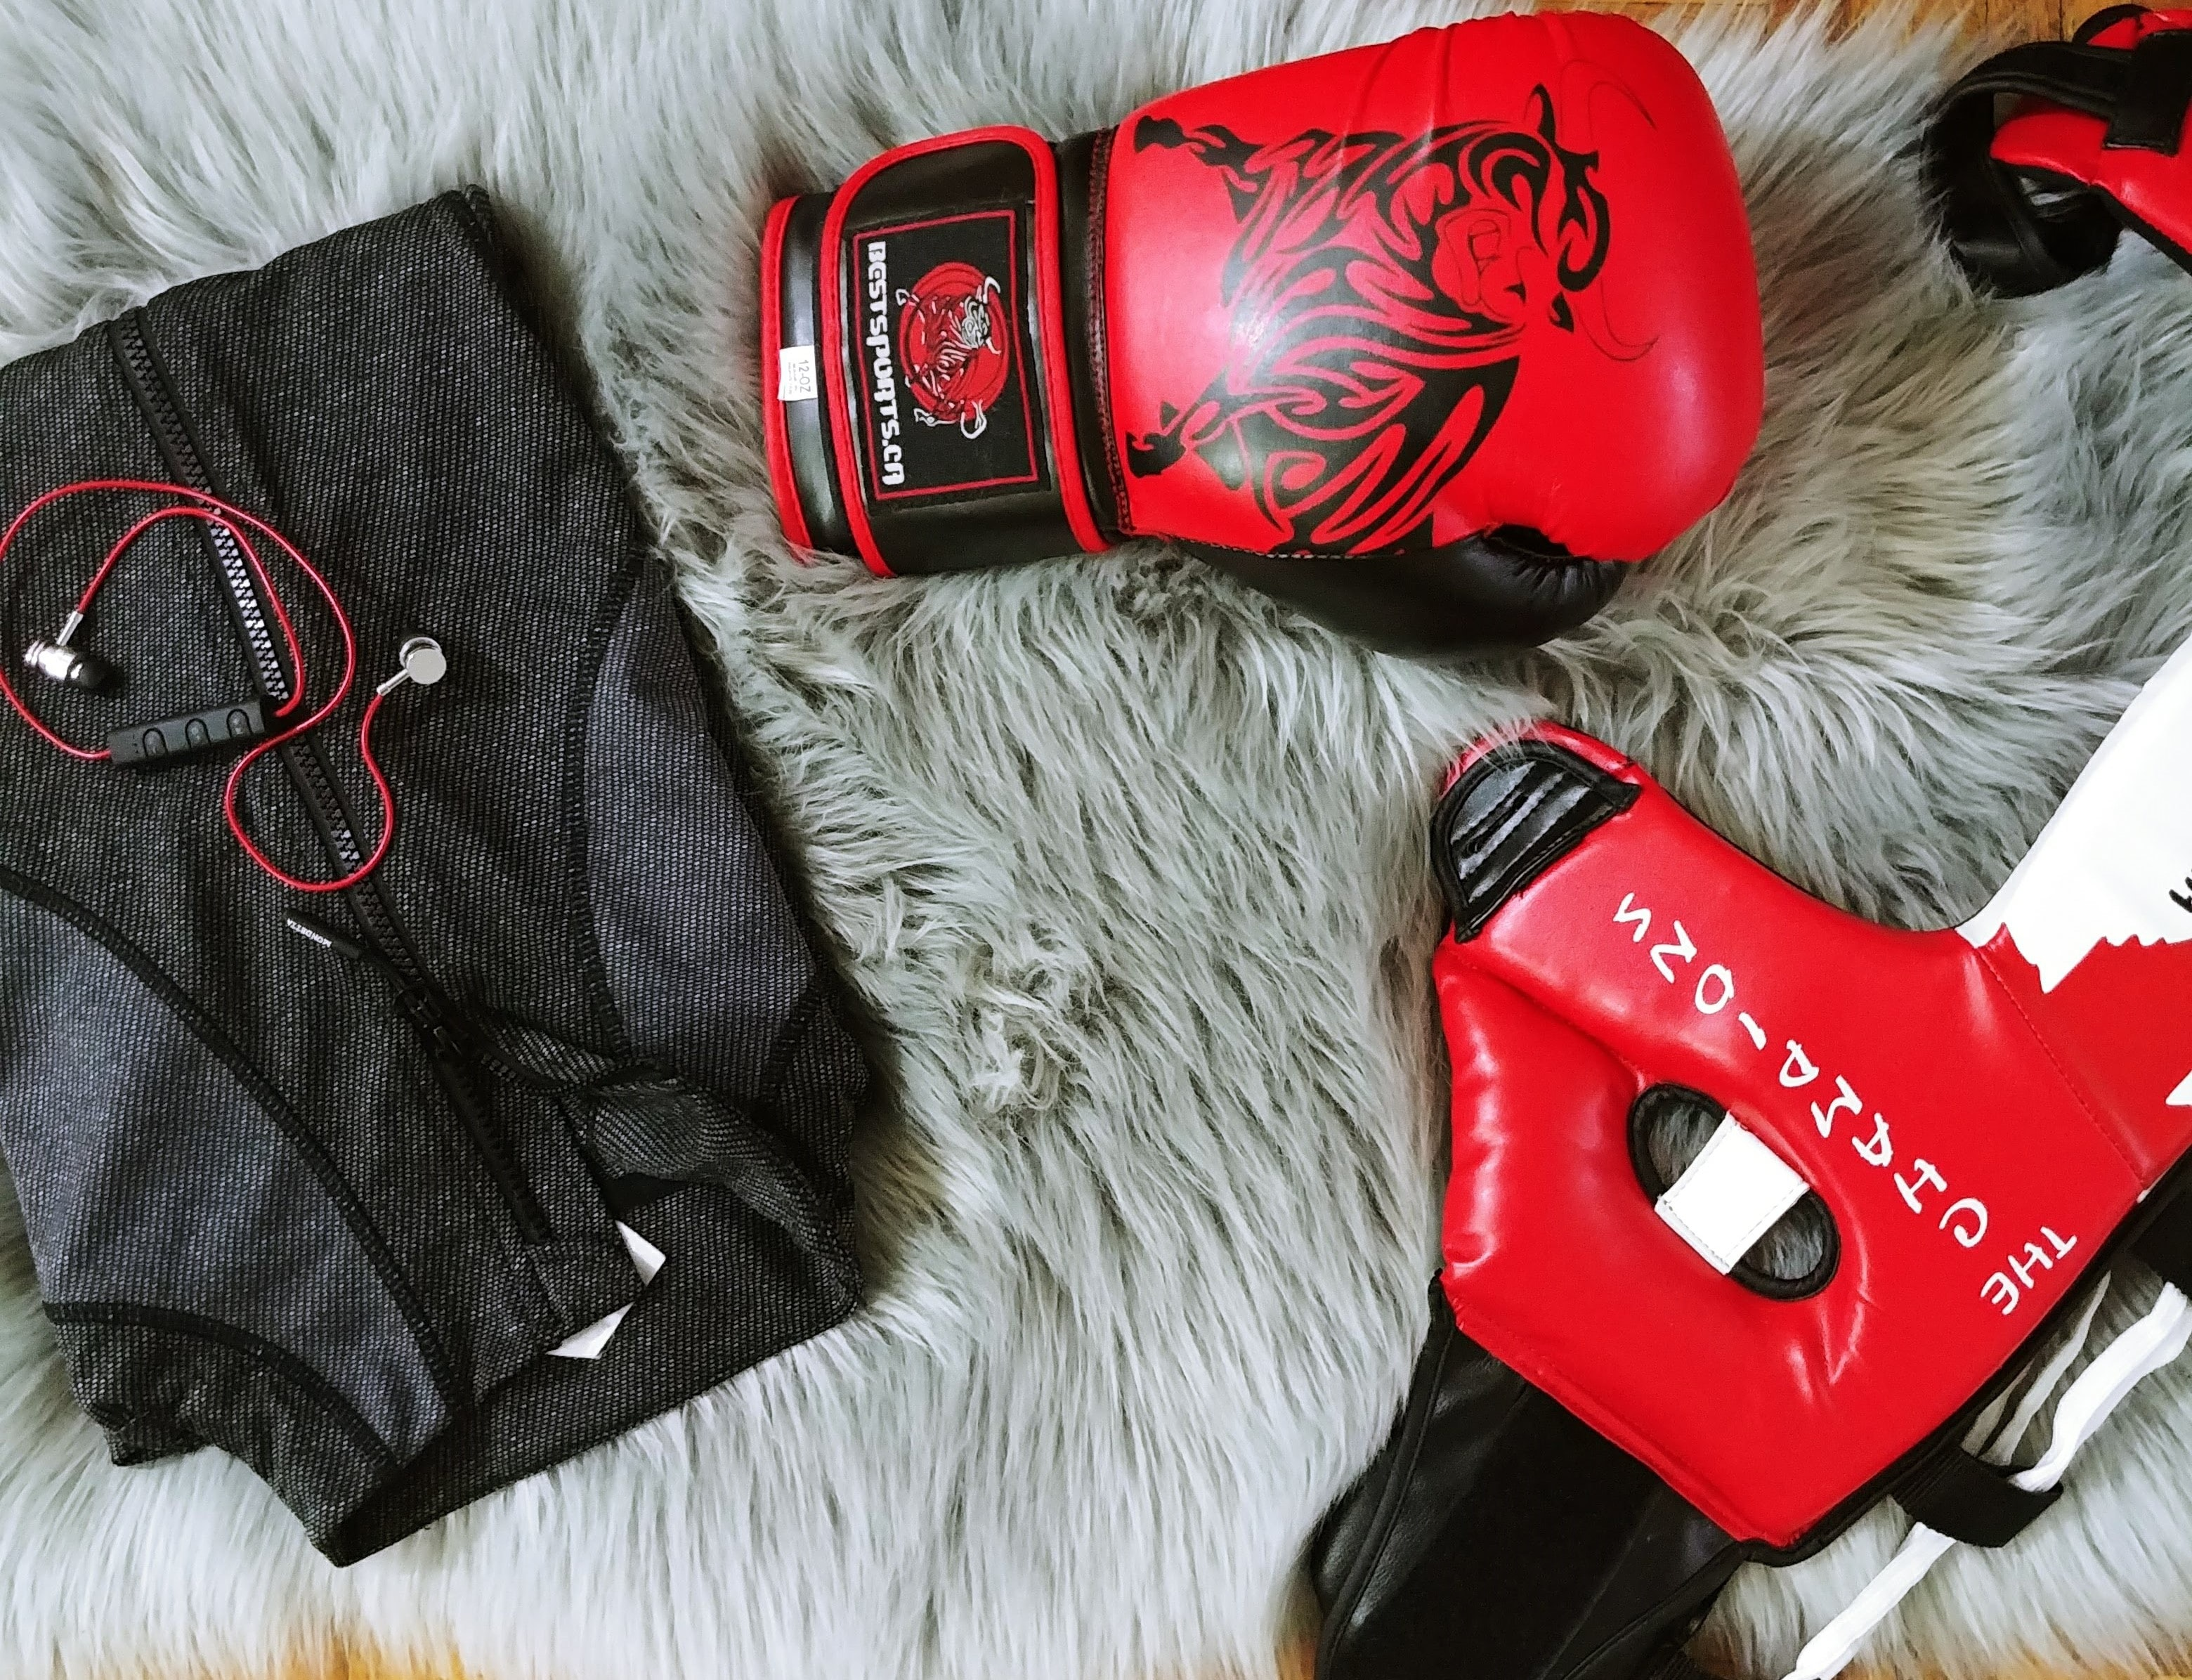 training glove, mask, and zip-up jacket